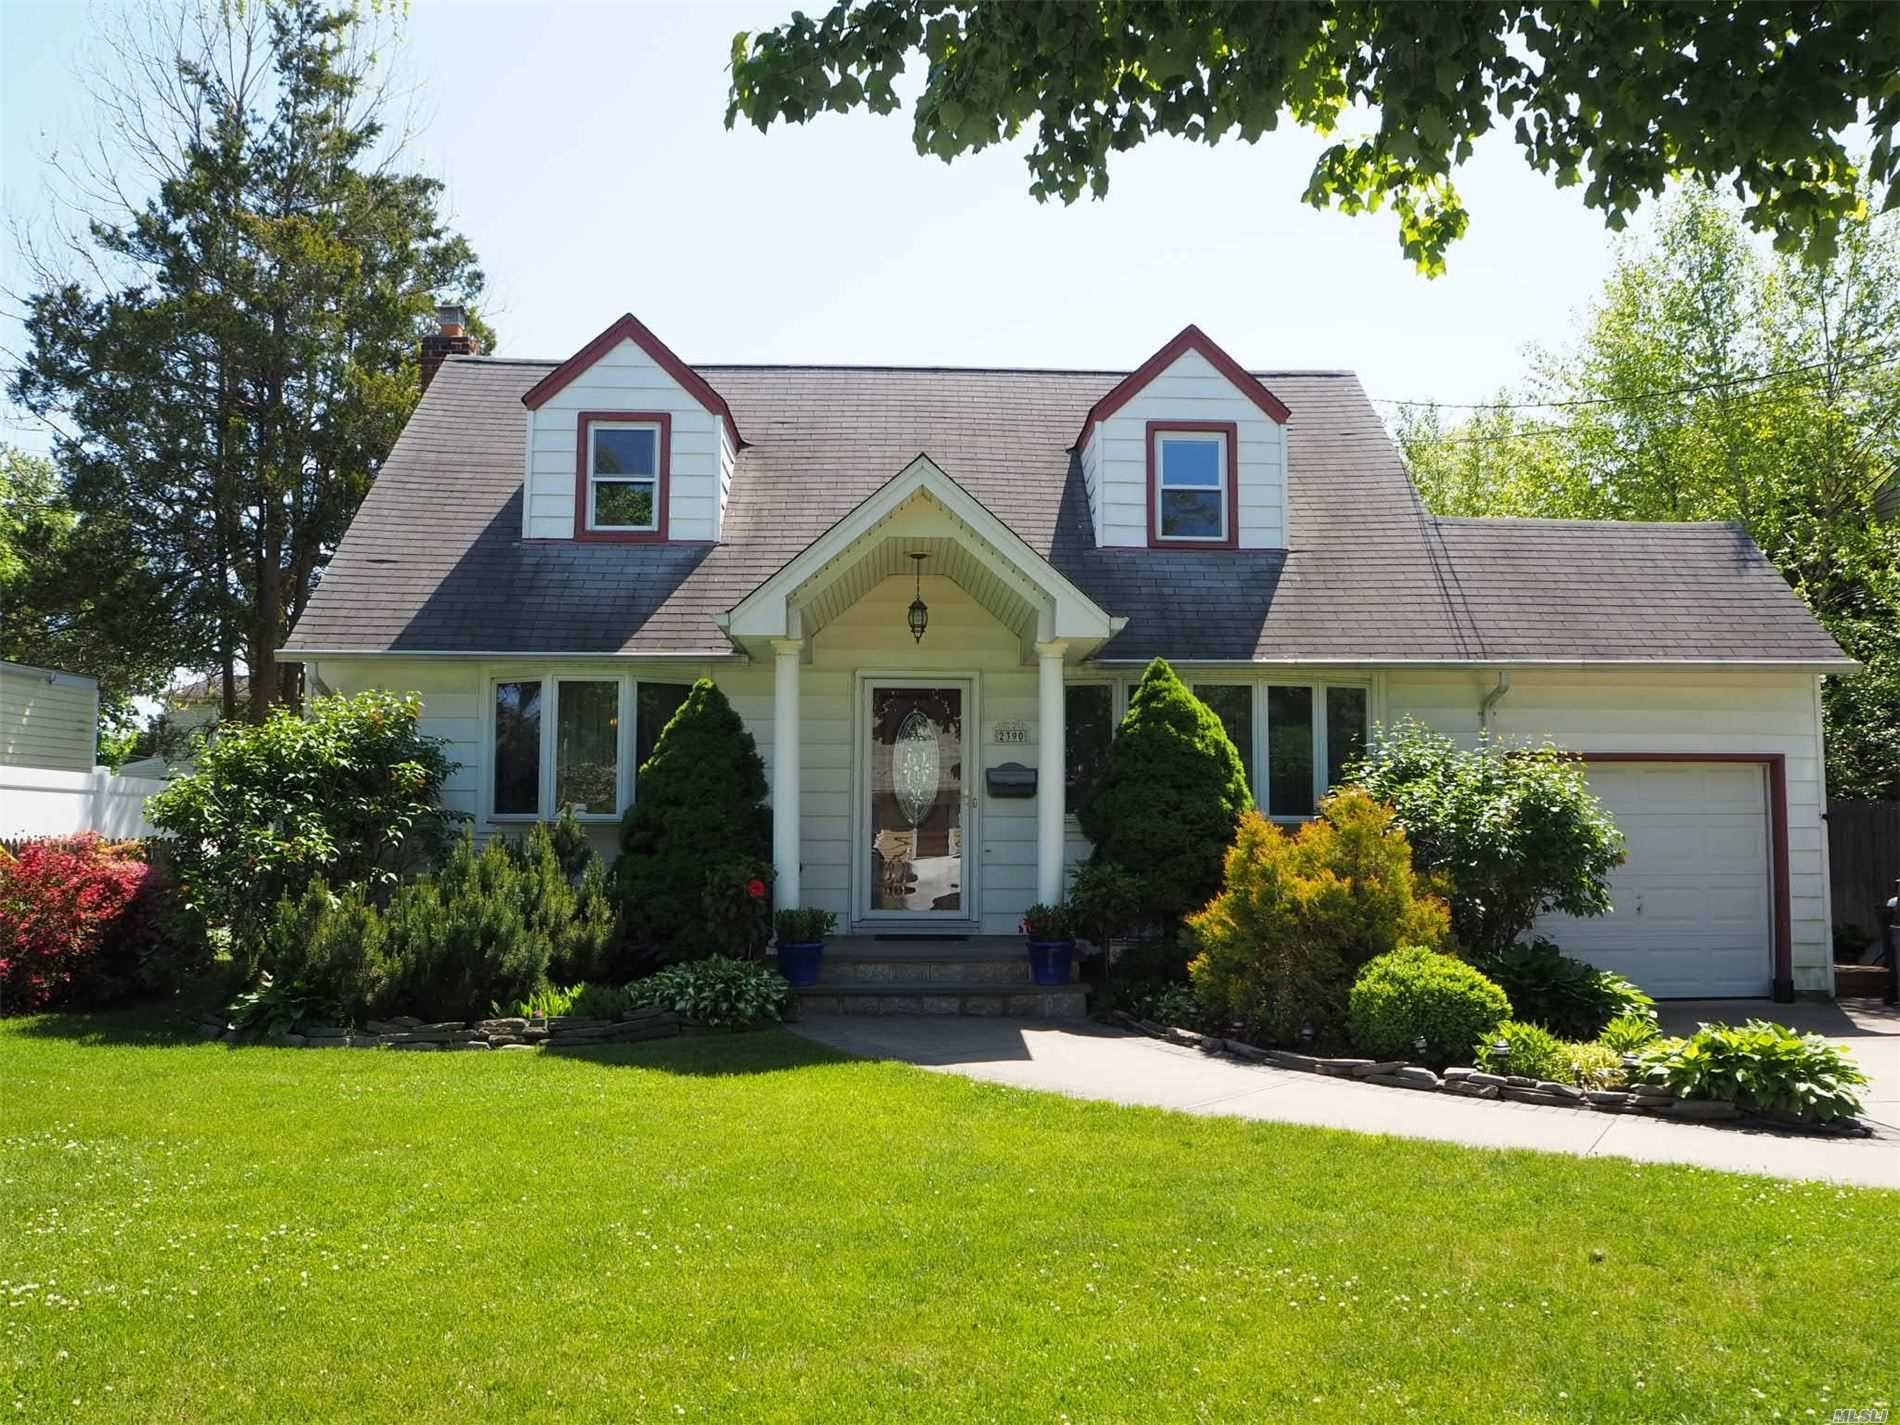 2390 8th St, East Meadow, NY 11554 - MLS#: 3217680